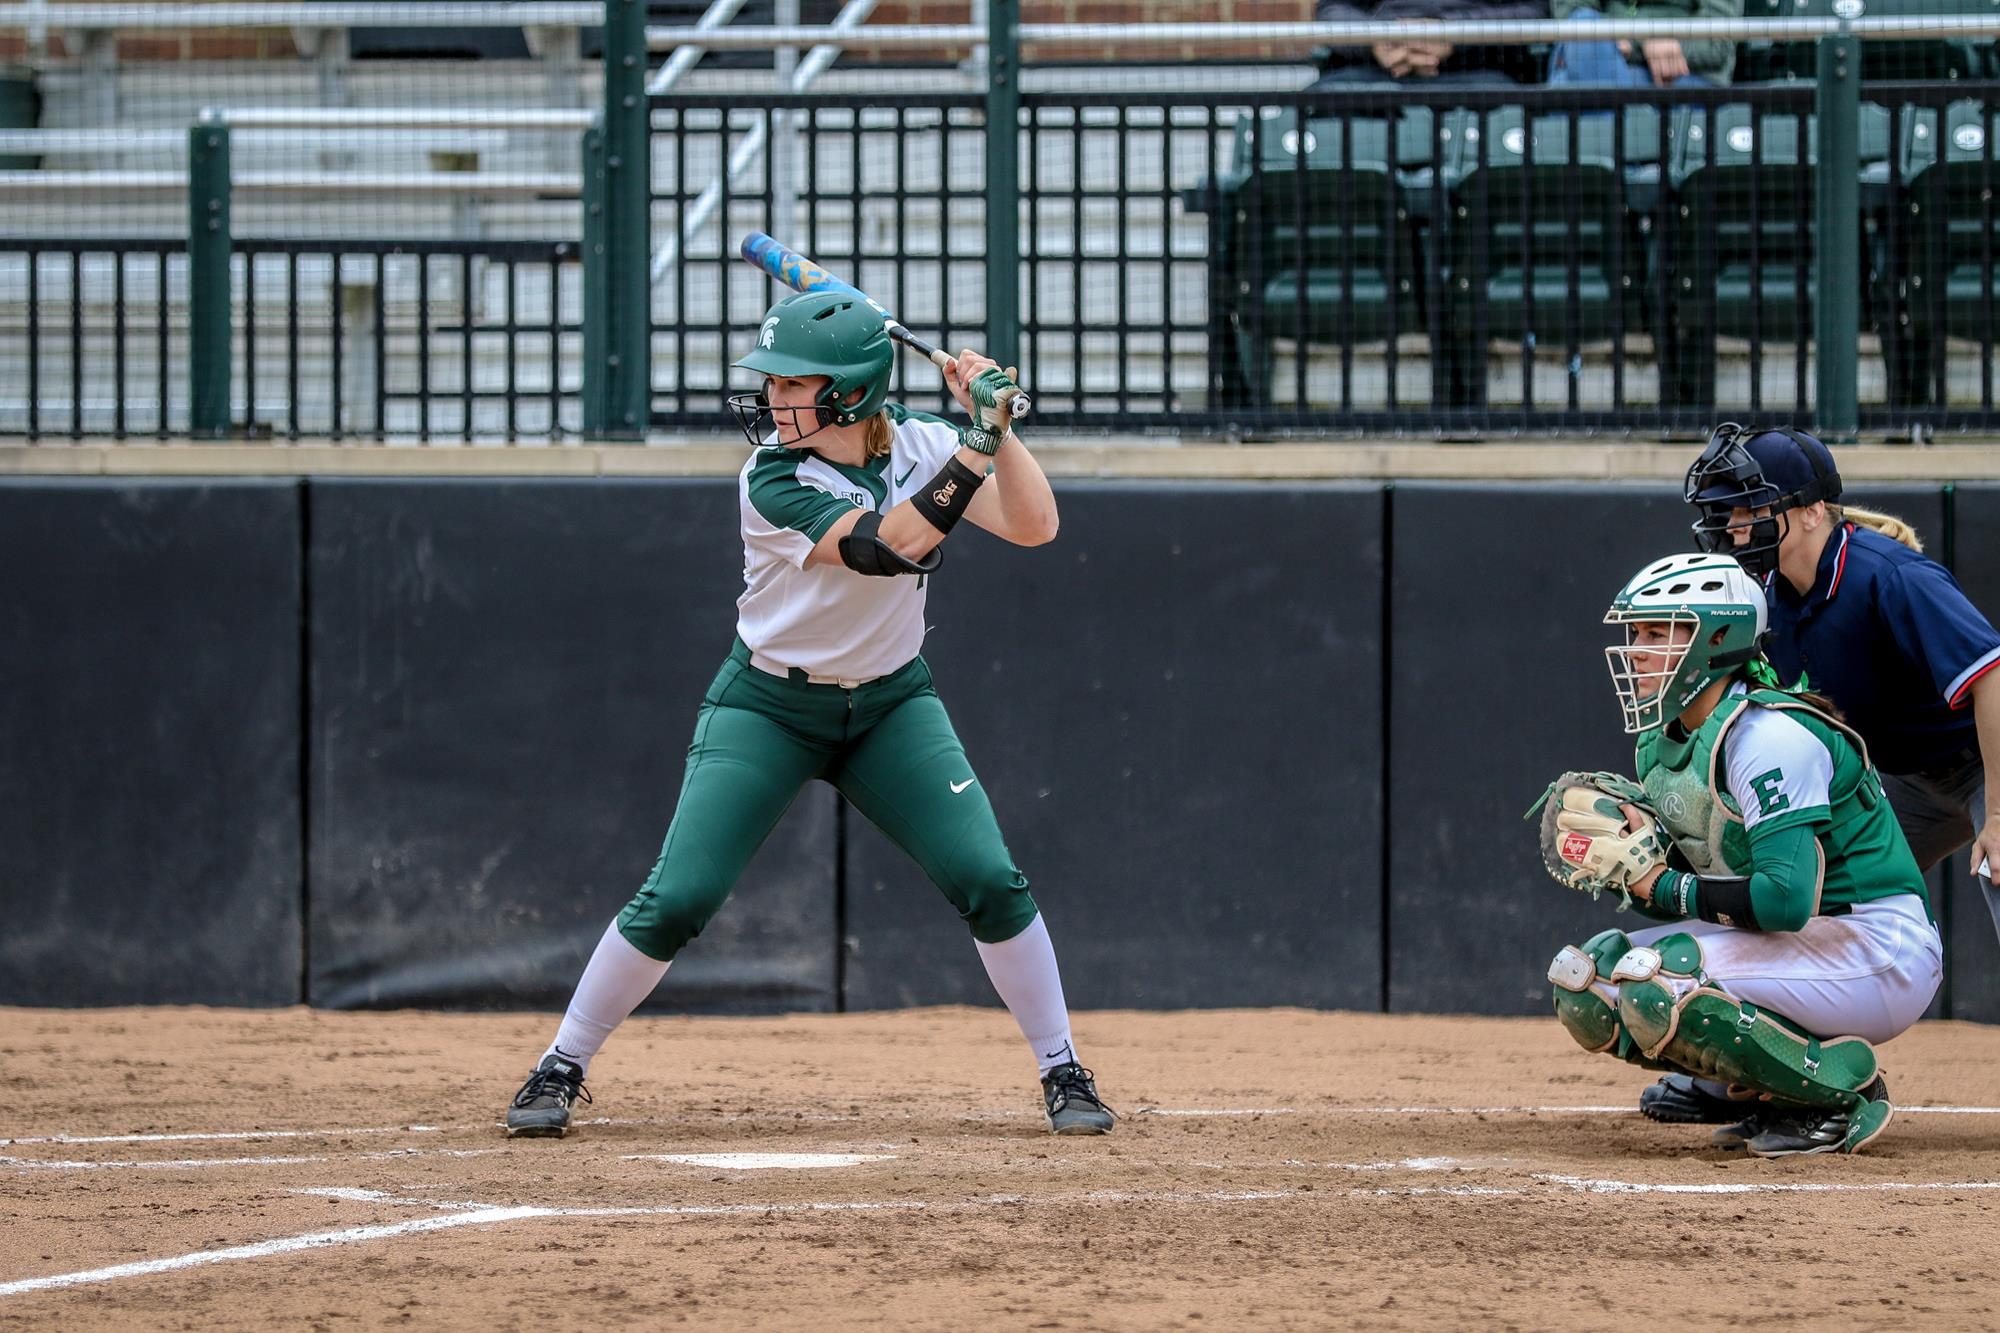 Lea Foerster - Softball - Michigan State University Athletics